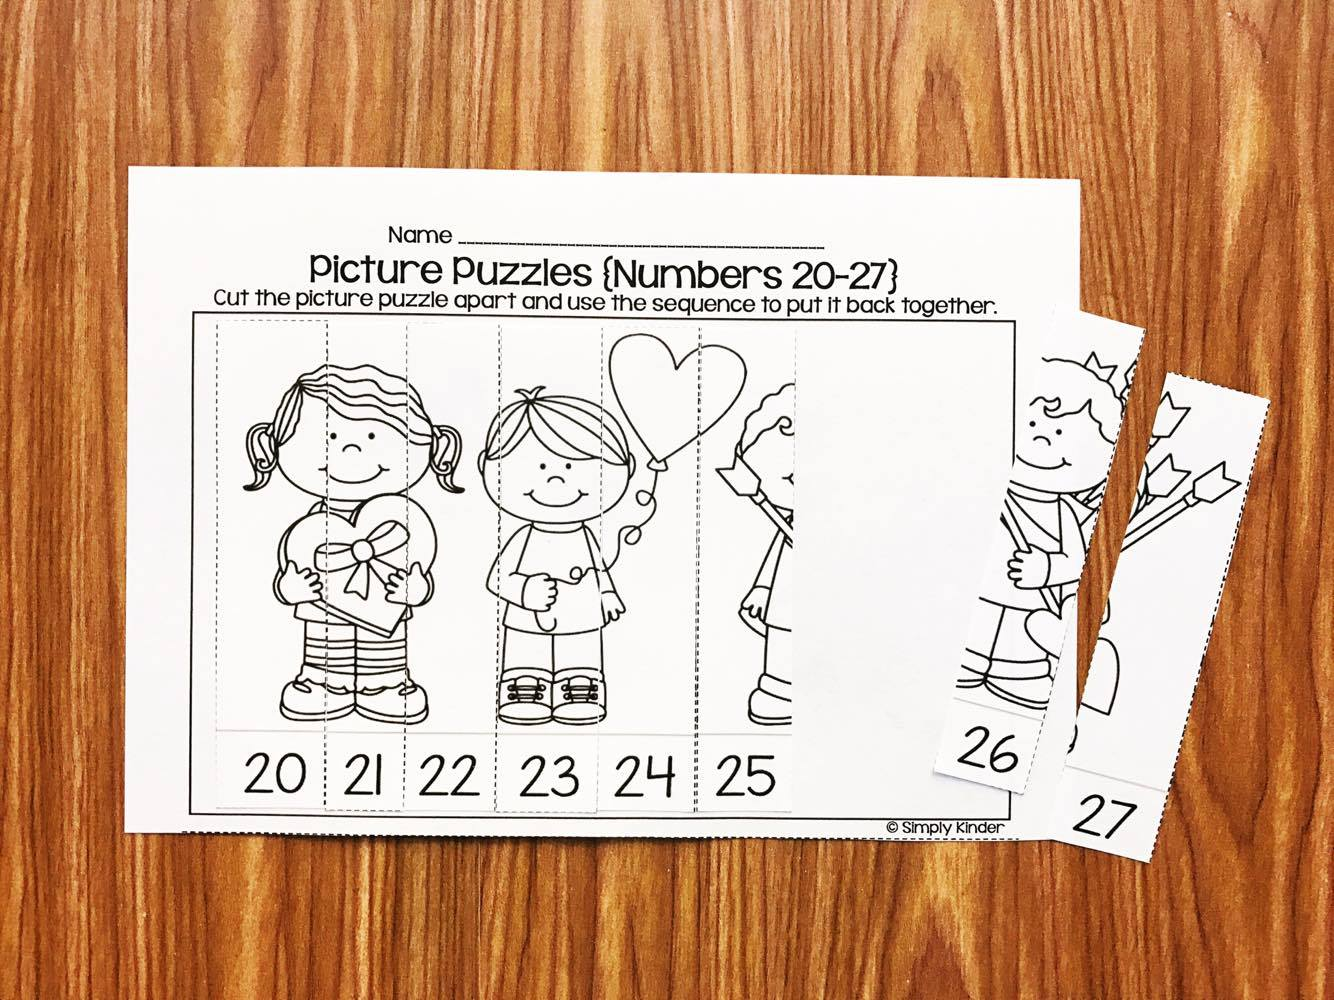 February Picture Puzzles are a fun and challenging activity for your kindergarten and first grade students.